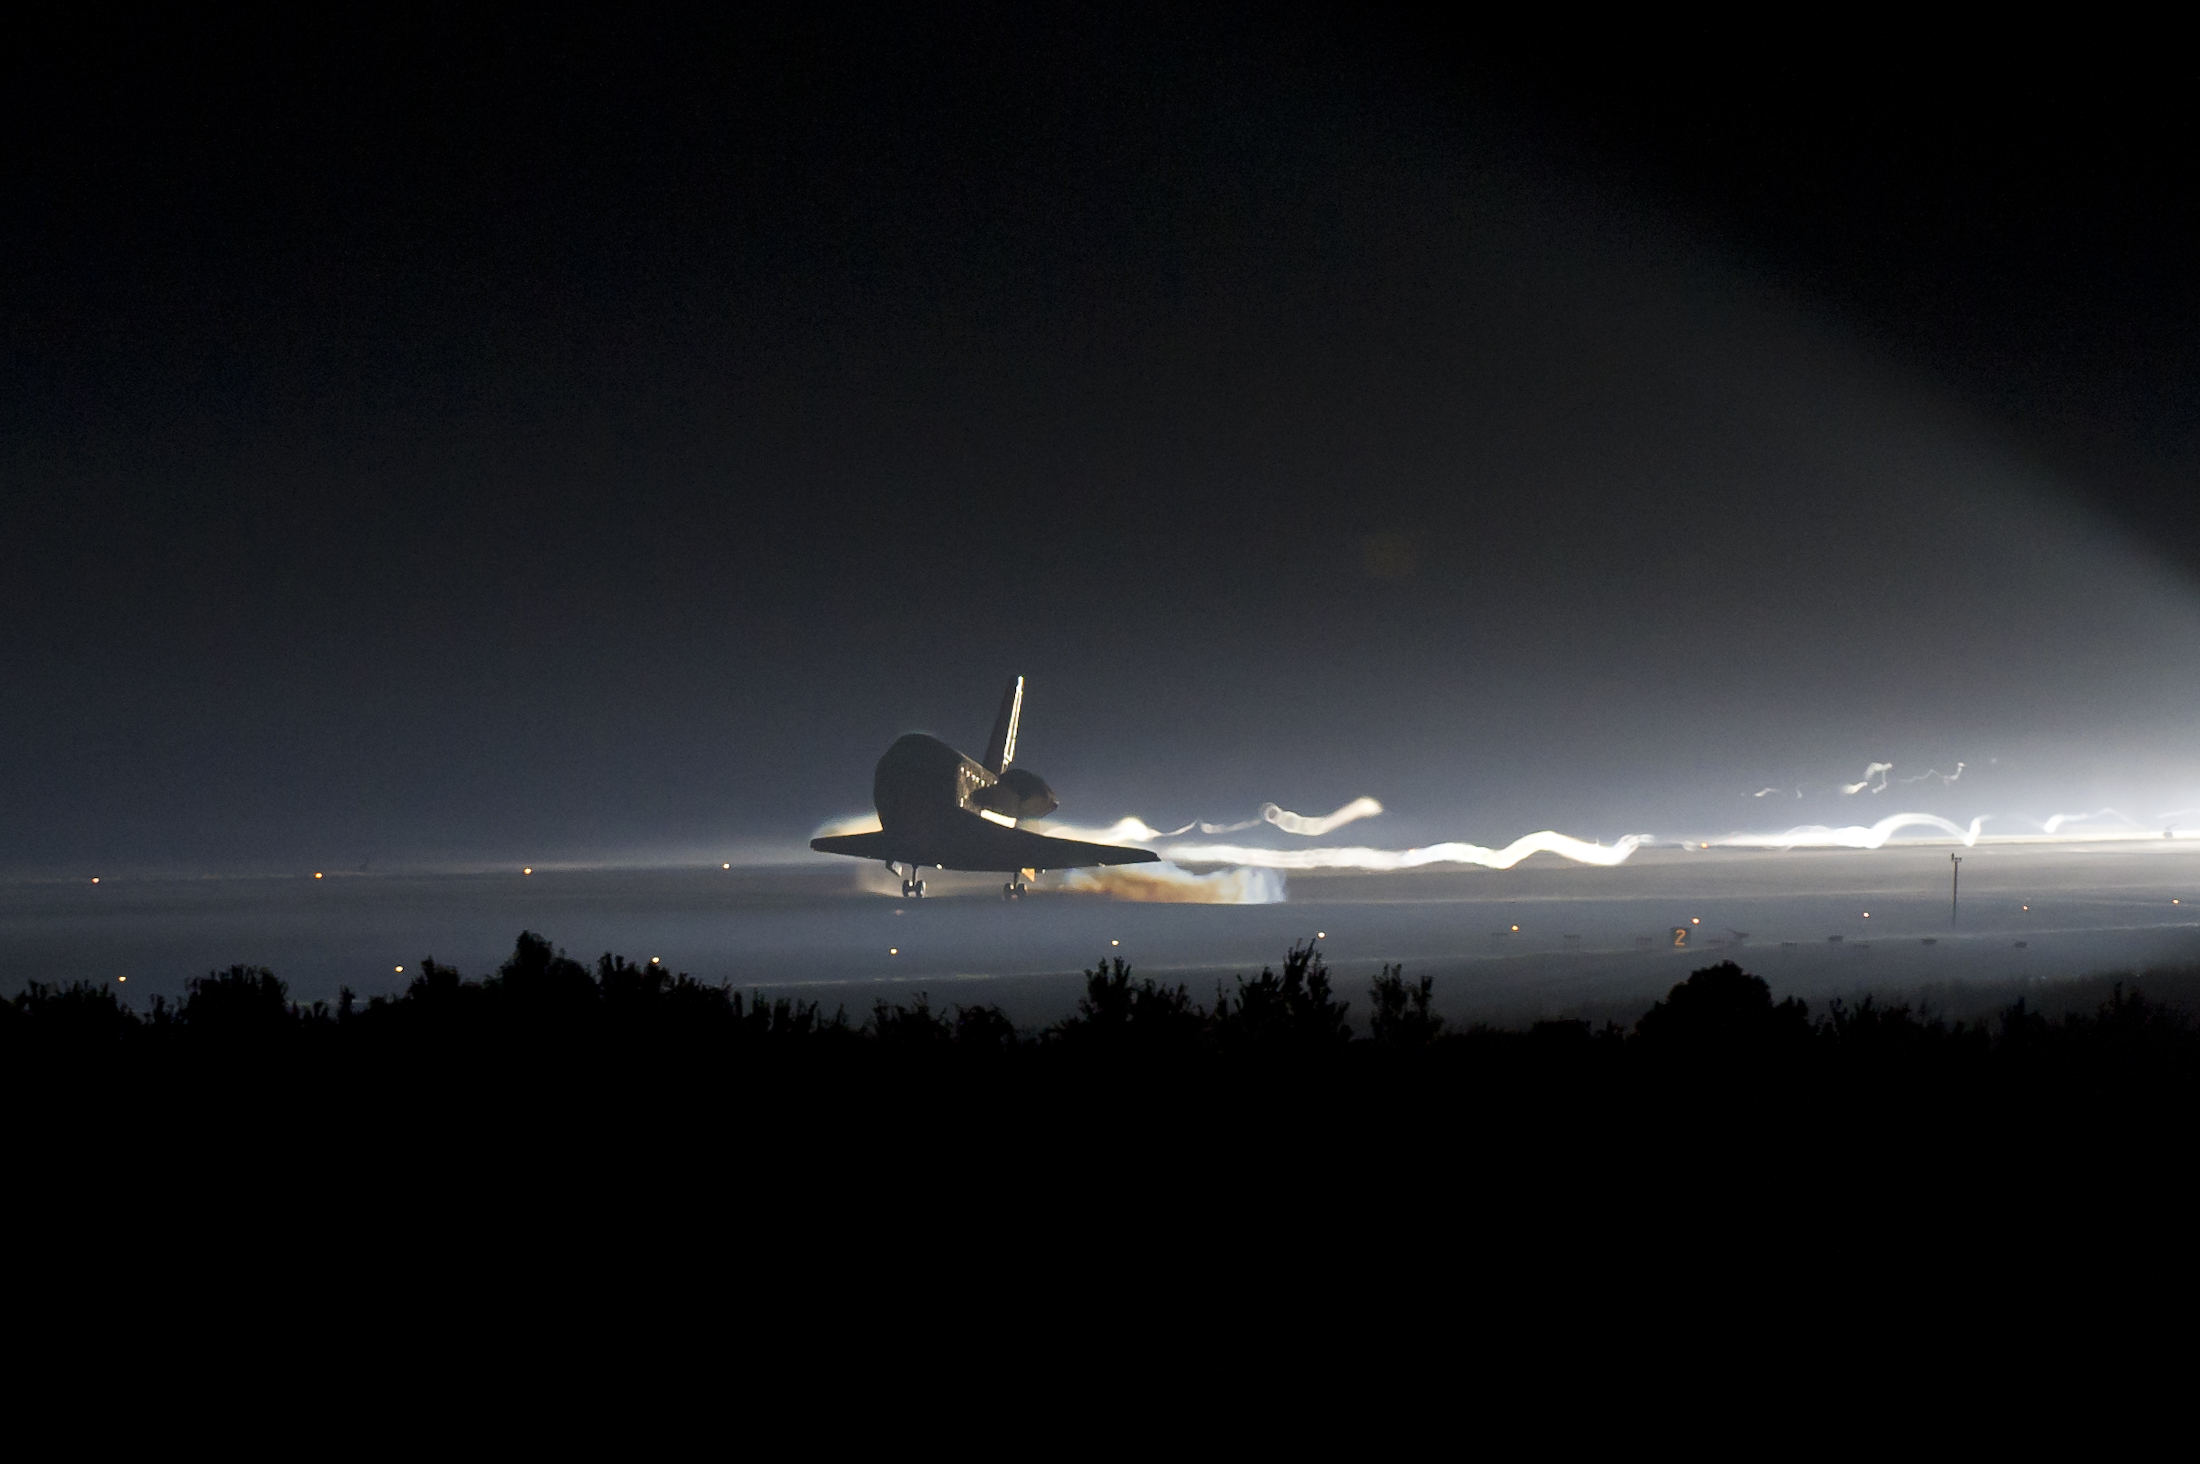 space shuttle landing explained - photo #28